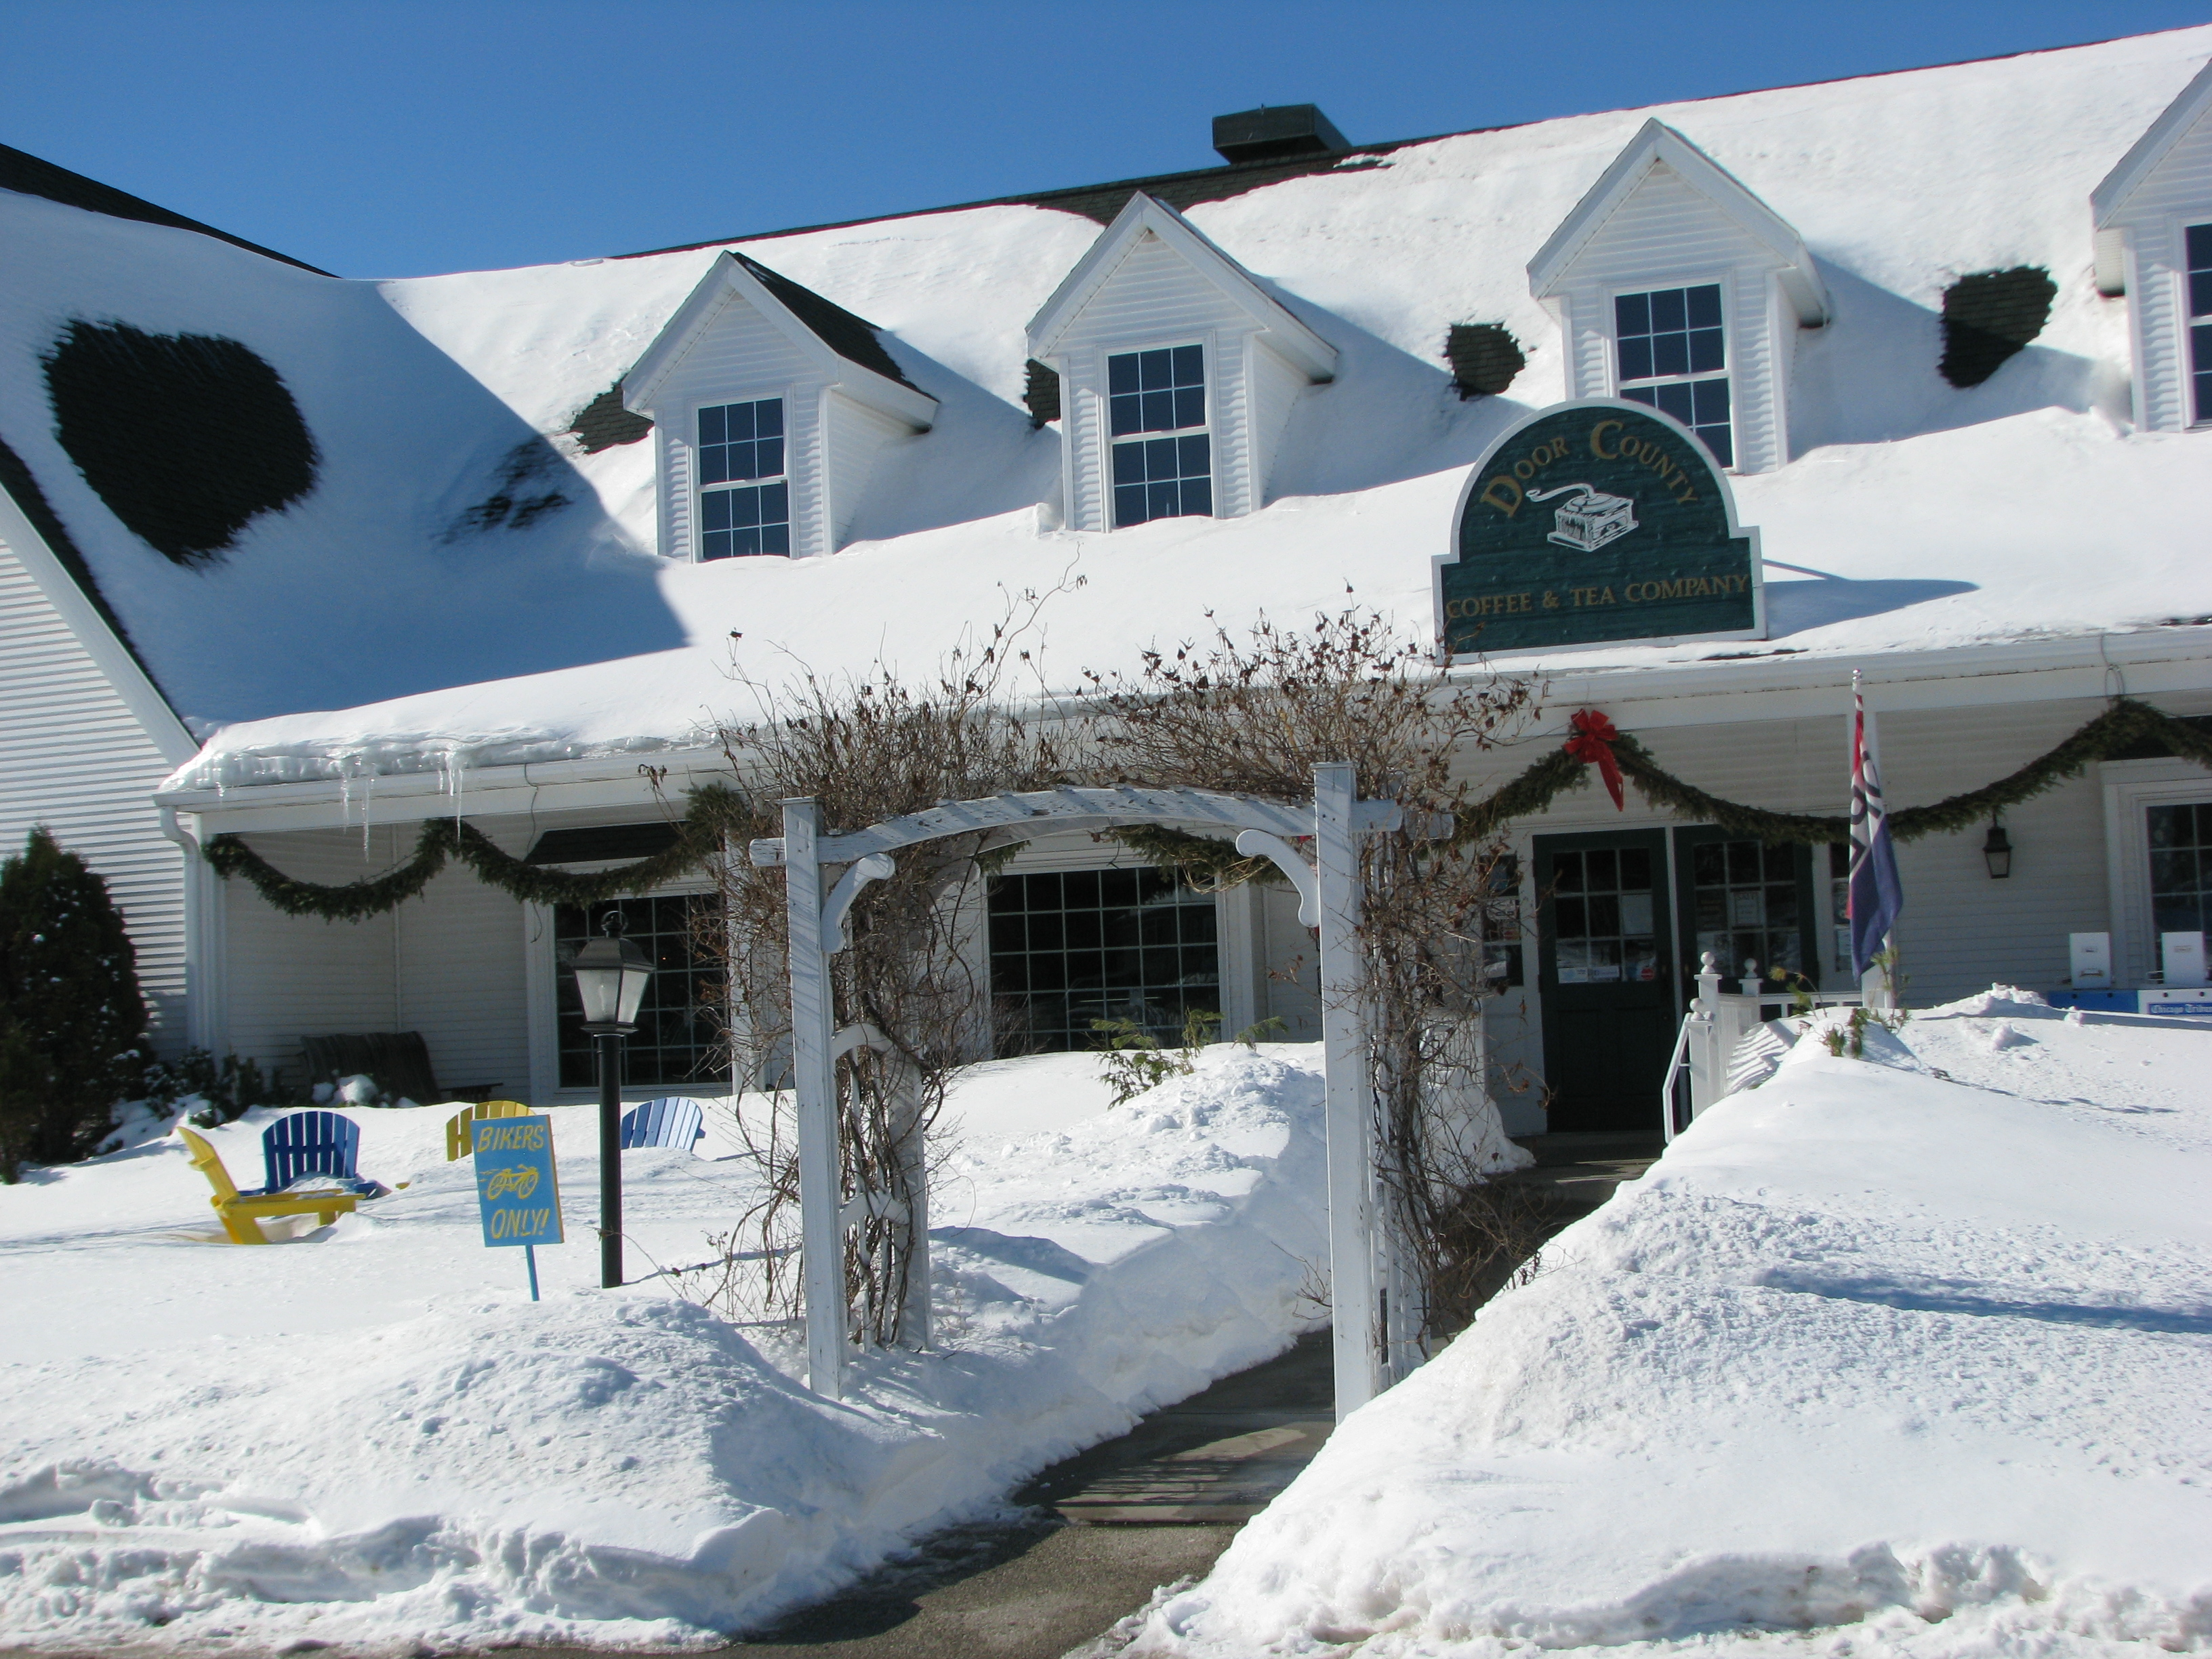 Winter Lodging Specials Amp Packages In Door County Wi 2017